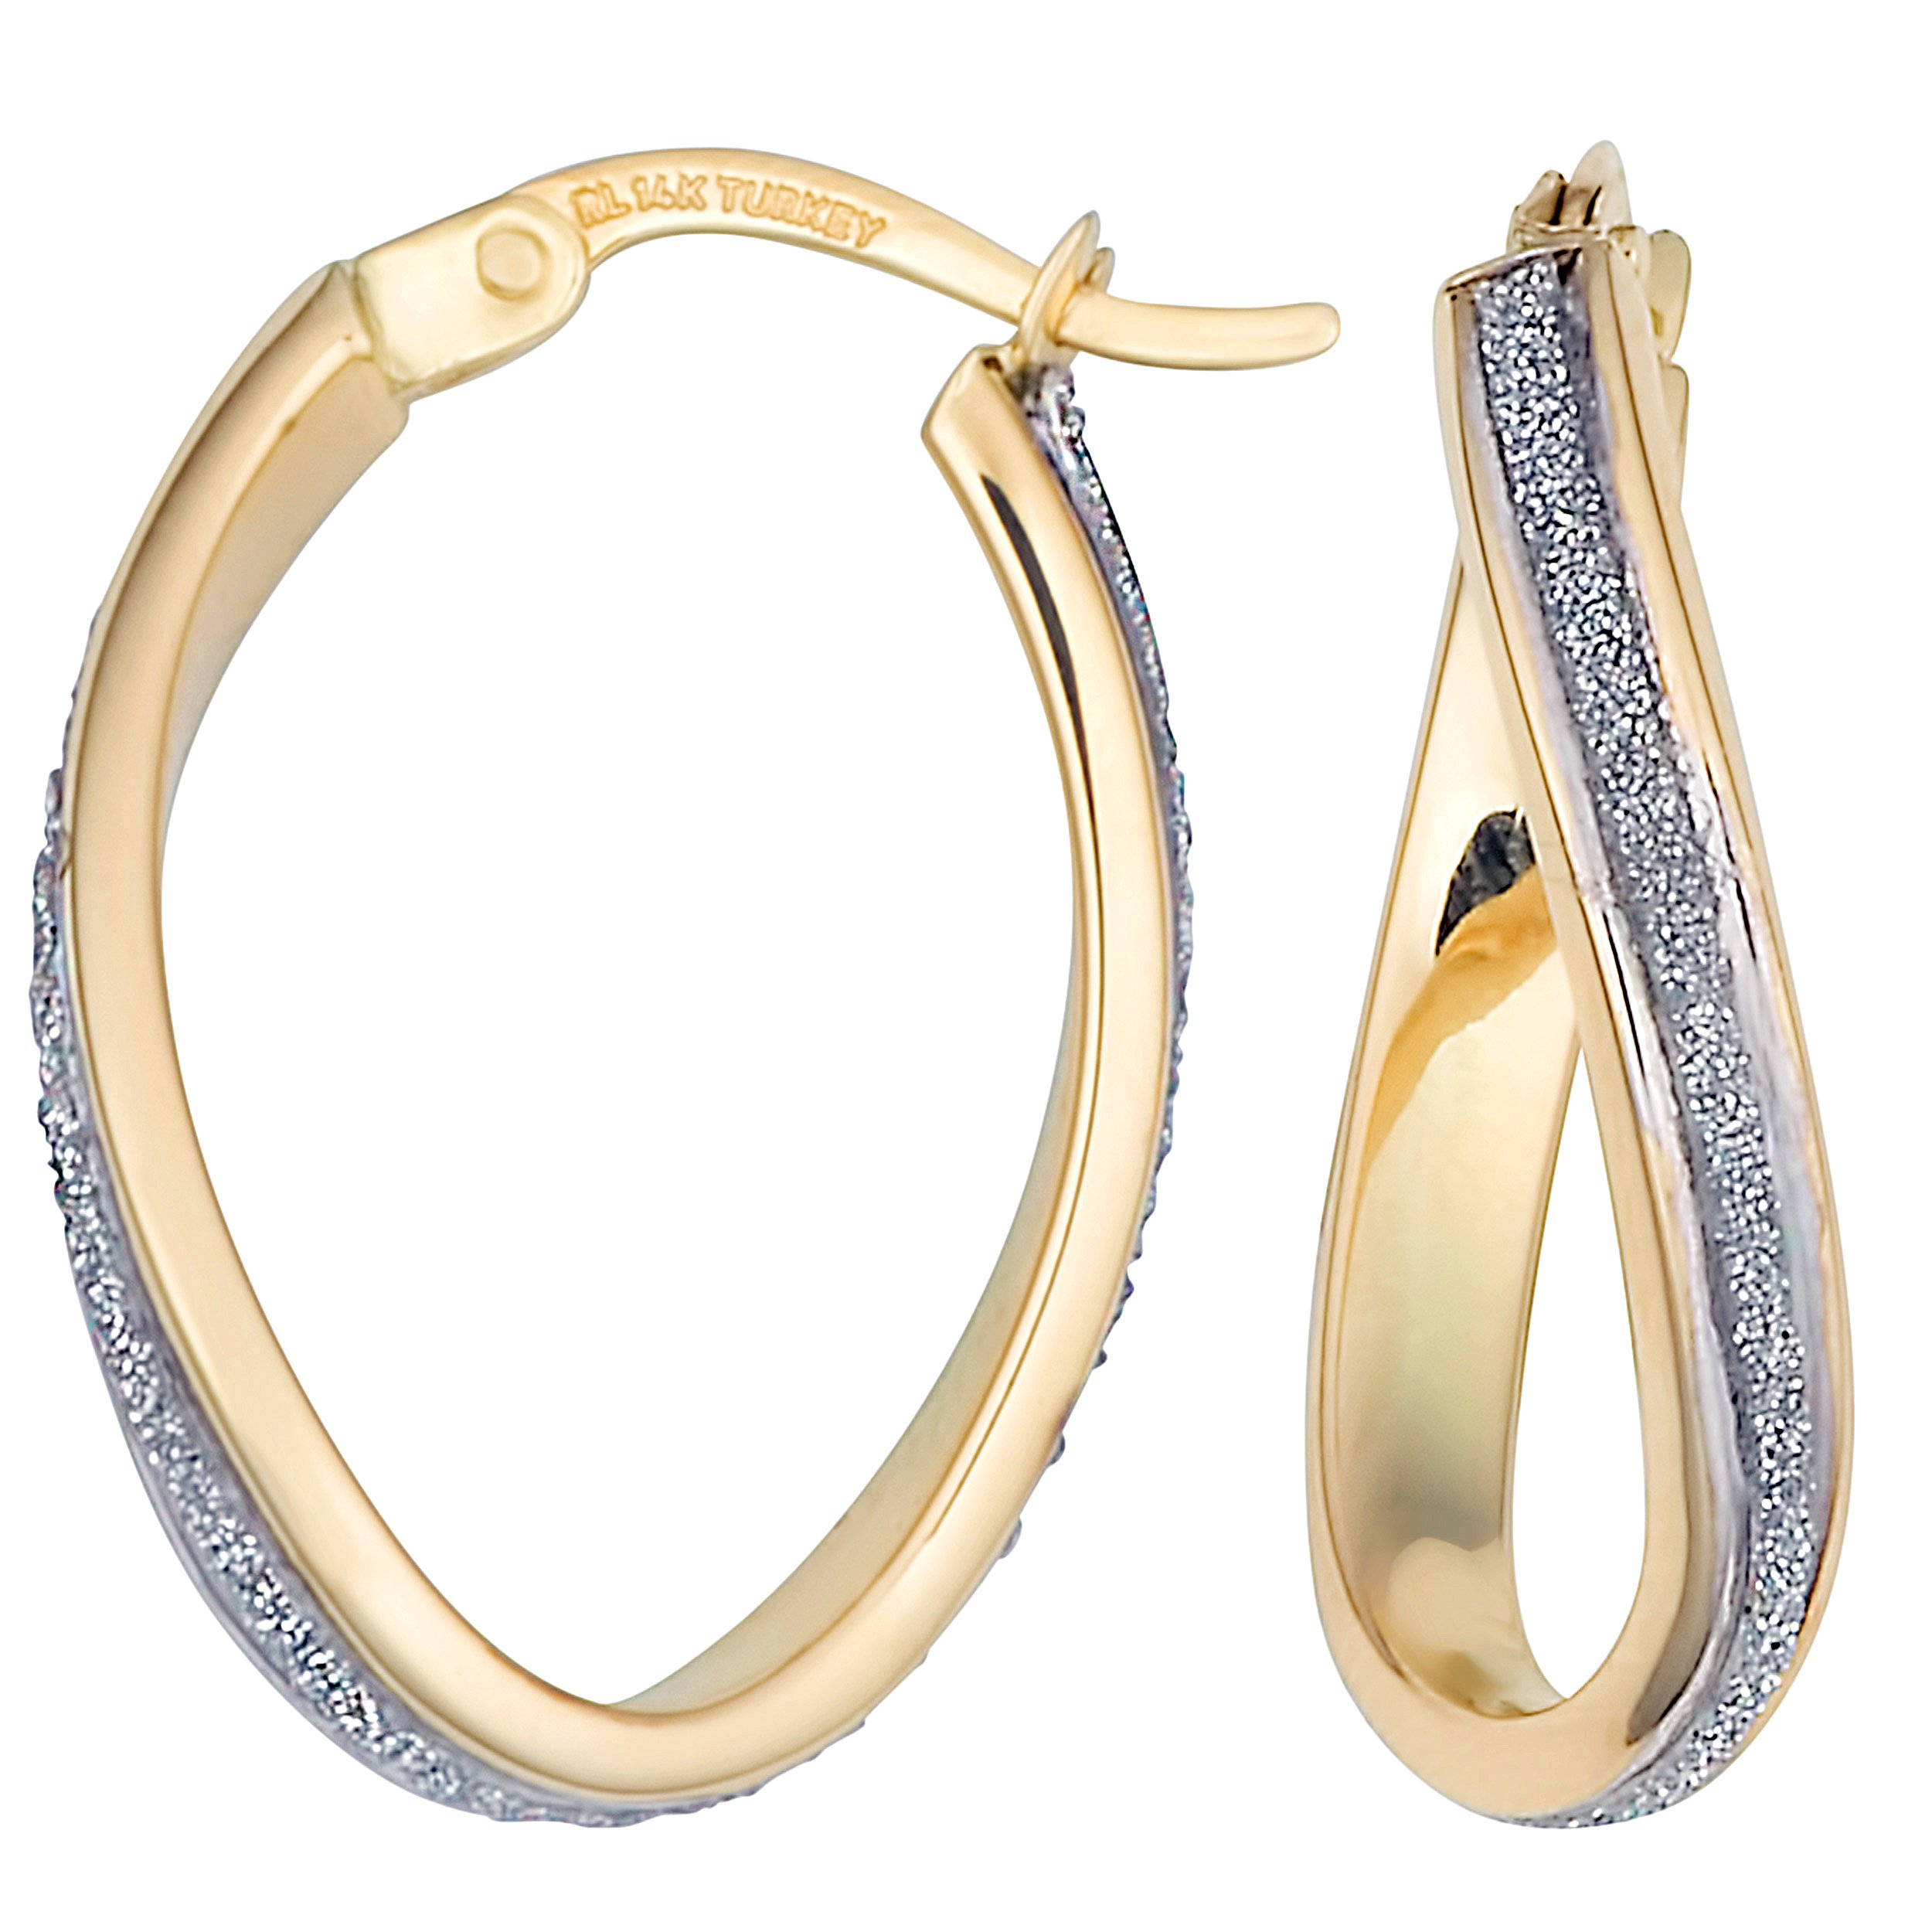 14k Two-tone High Polish And Glass Blast Finished Twisted Oval Hoop Earrings